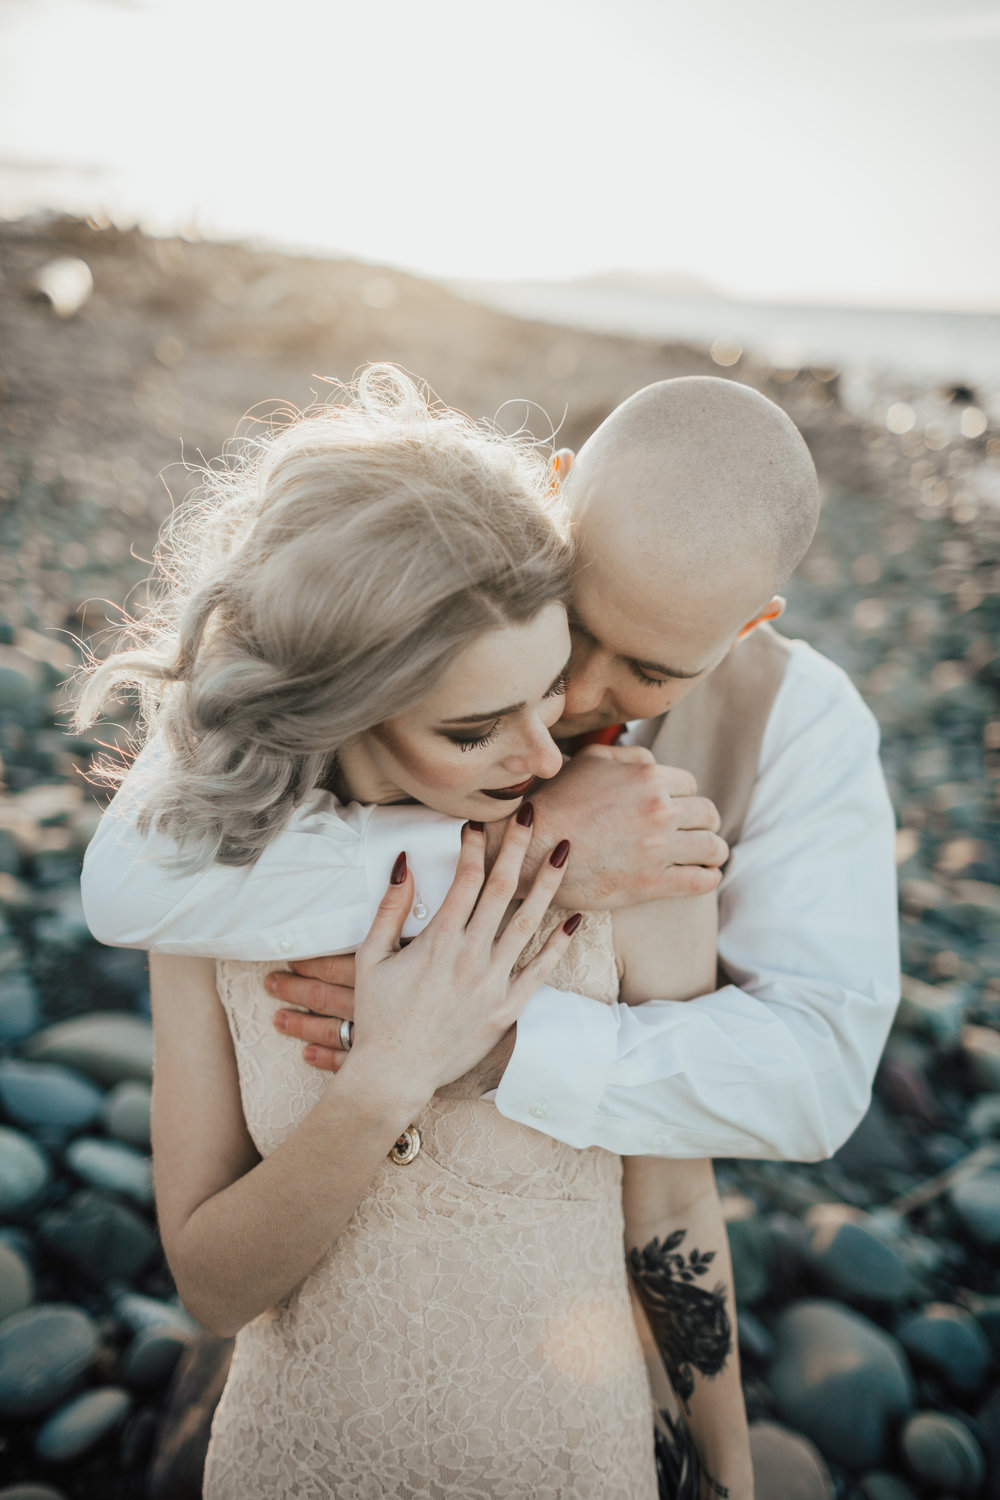 Port Angeles-PNW-Sequim-Portrait-wedding-elopement-photographer-kayladawnphoto-kayla dawn photography-olympic peninsula-portraiture108.jpg